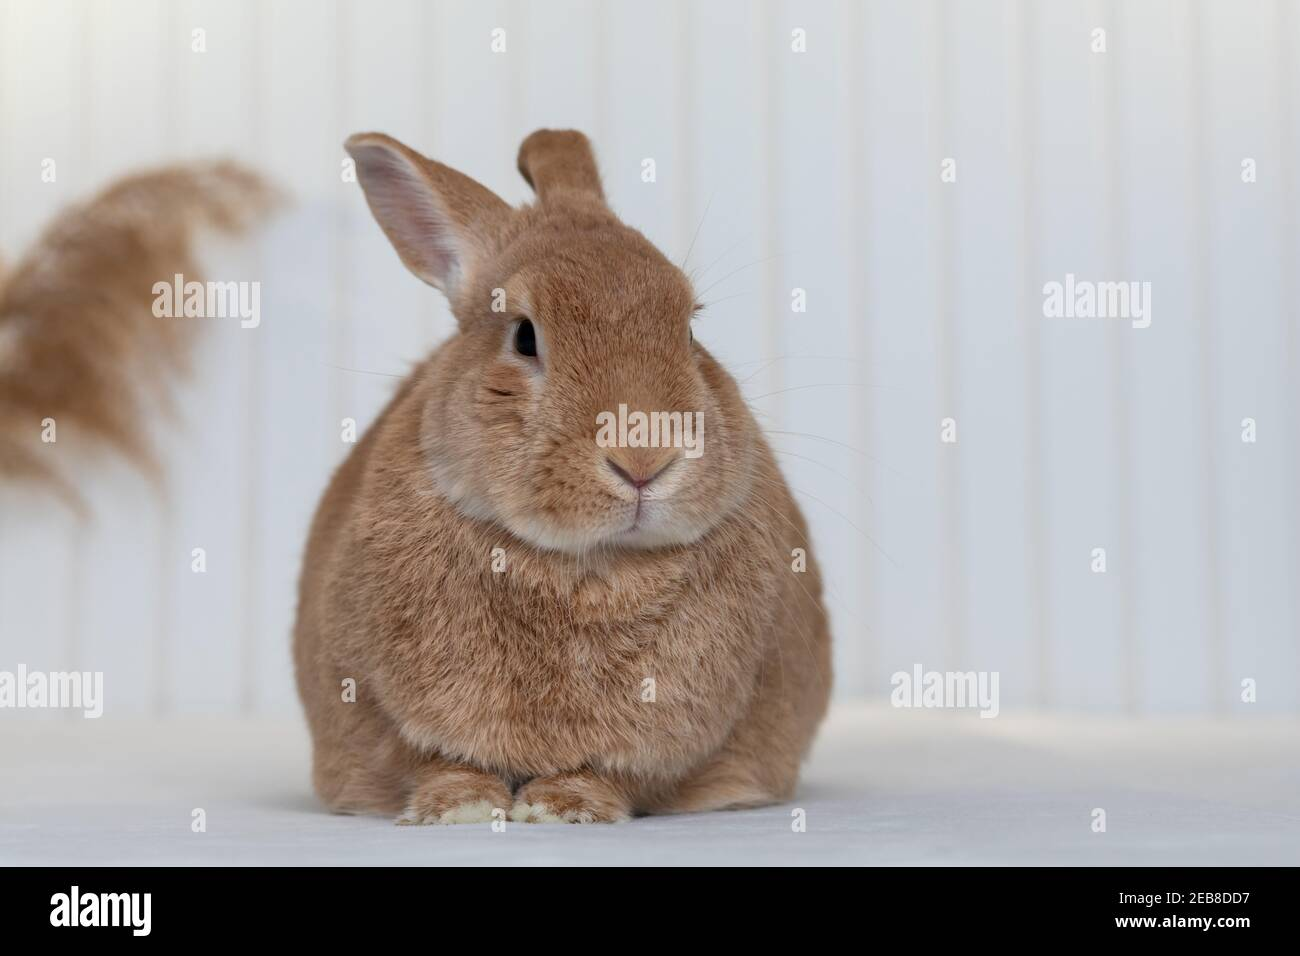 Rufus Rabbit poses on white plush blanket with white wainscot background.  Natural neutral colors and texture copy space. Stock Photo